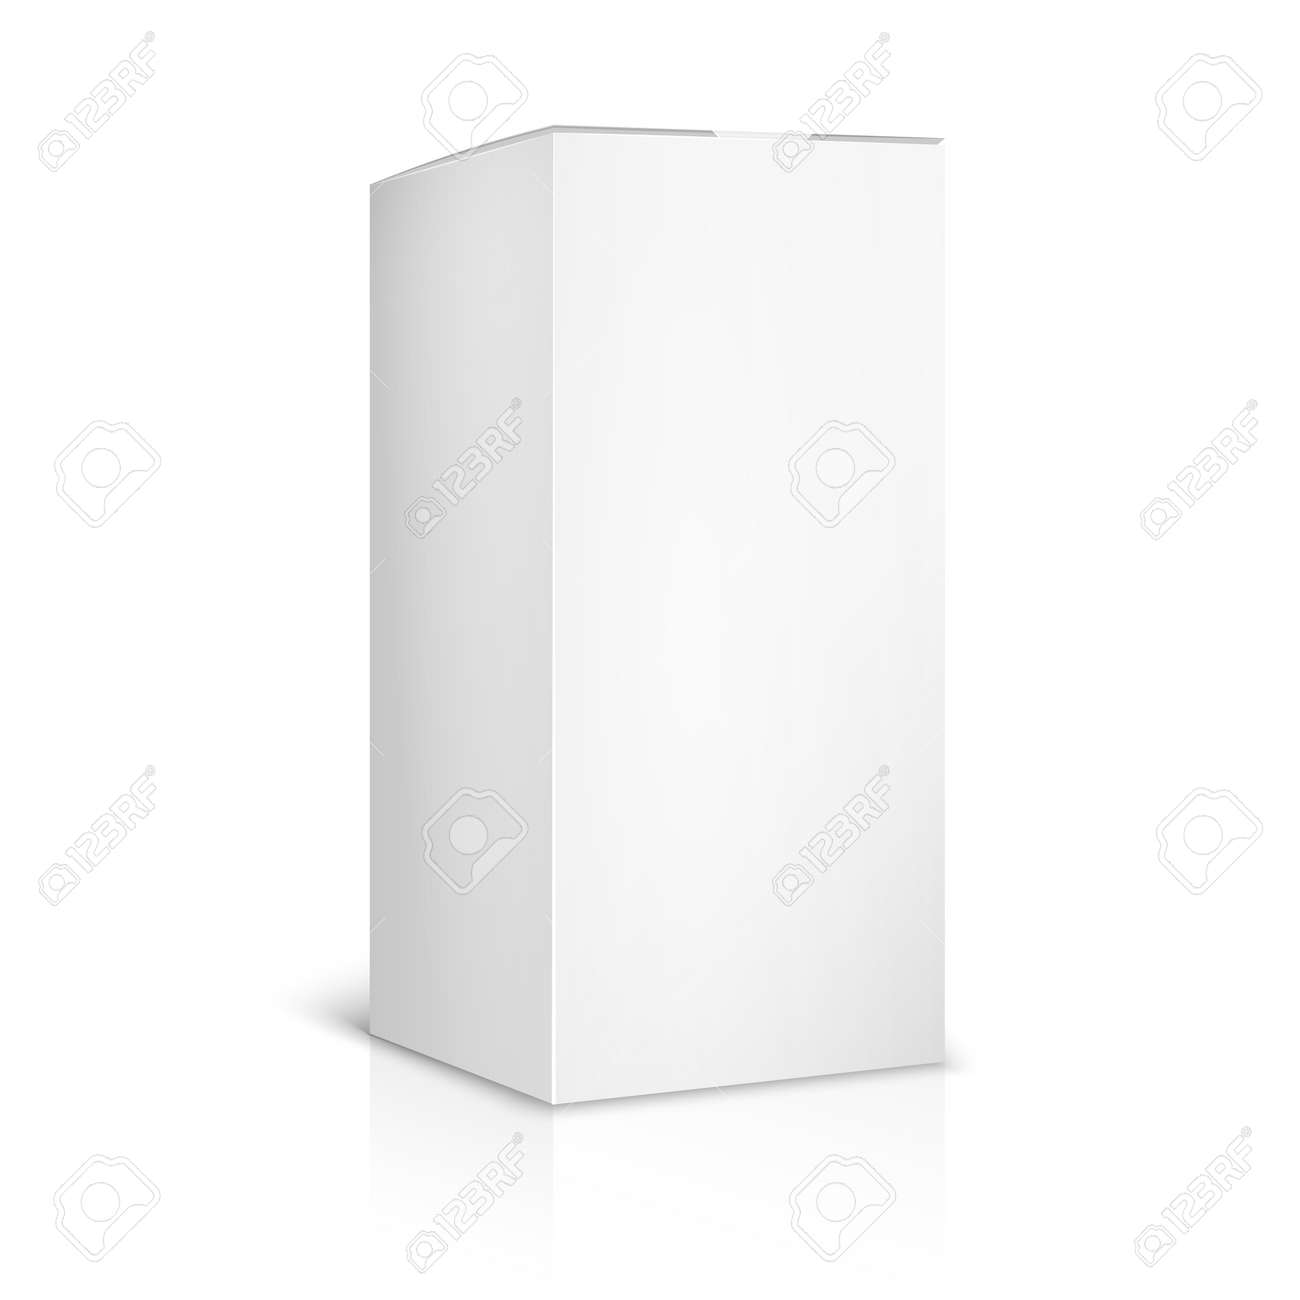 Blank paper or cardboard box template on white background. Container and packaging. Vector illustration - 166800206